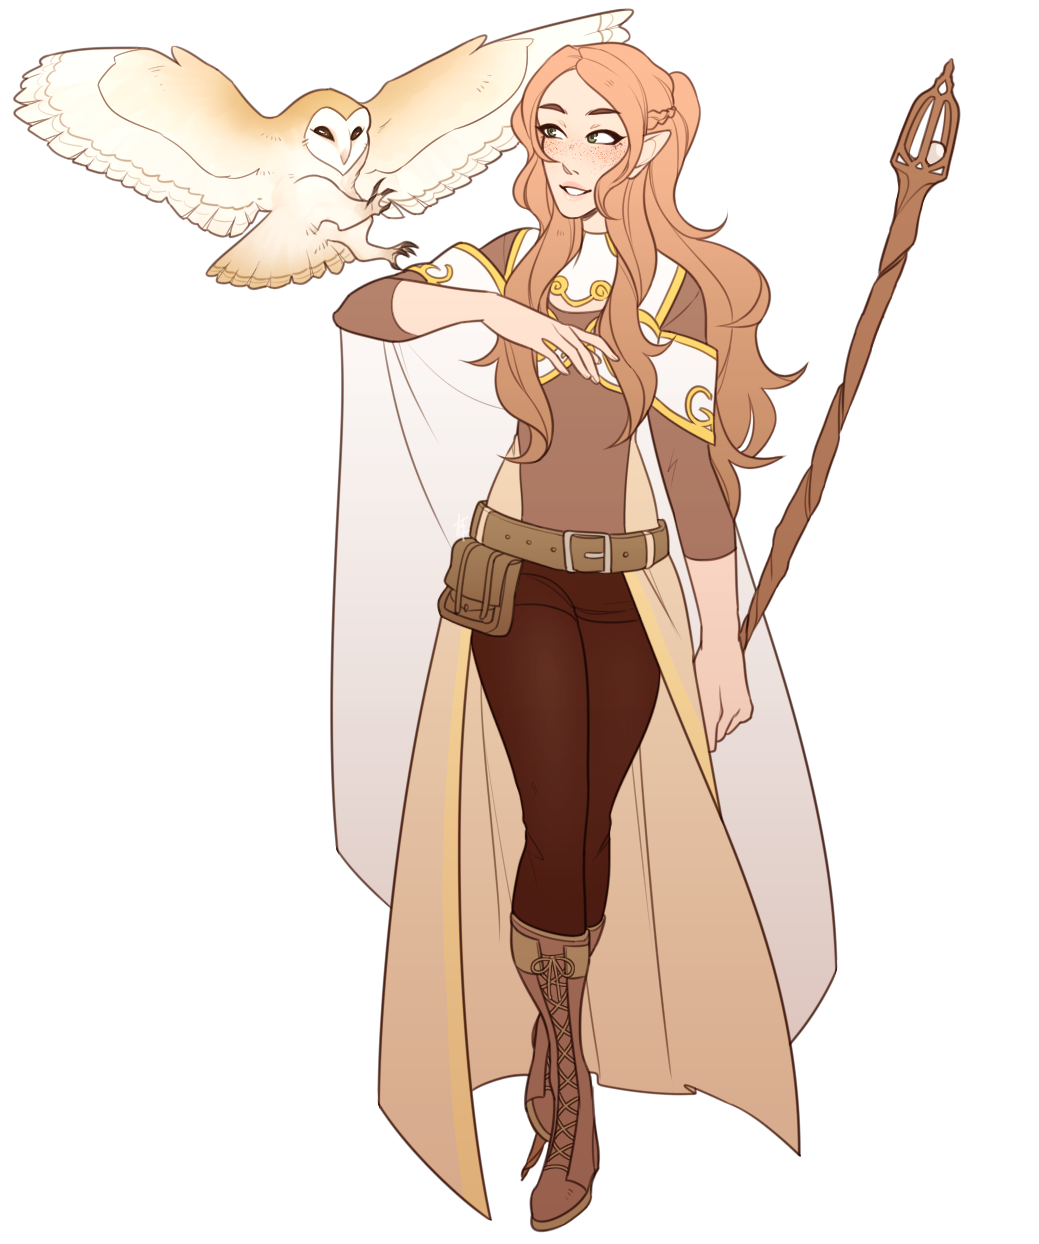 I Commissioned Dejasquietplace To Draw My Dnd Character Ailynn The Half Elf Cleric With Her Owl Chur Dungeons And Dragons Characters Dnd Elves Elf Characters